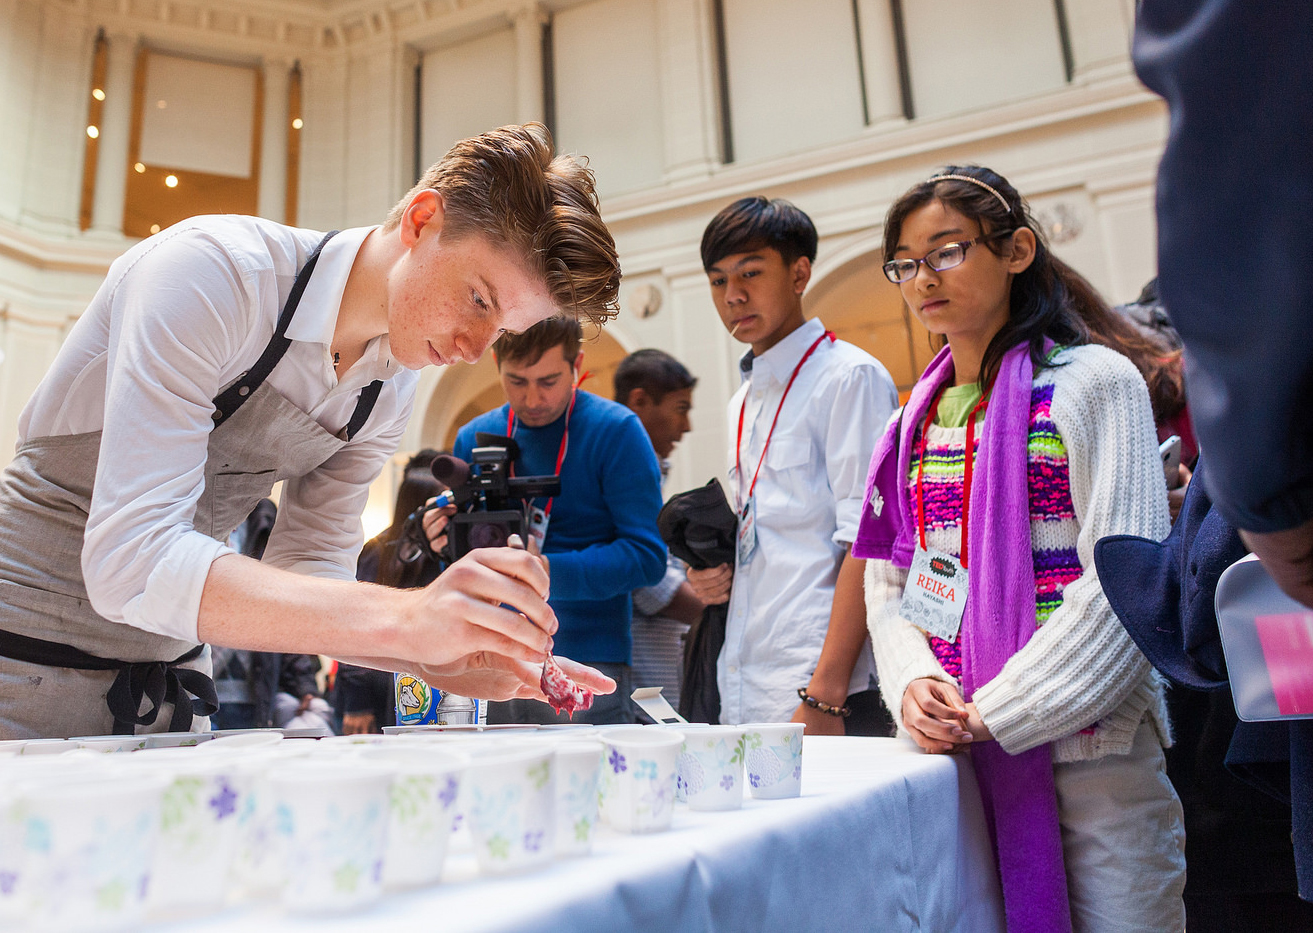 Fifteen-year-old chef Flynn McGarry plates one of his creations at TEDYouth 2014. Attendees got to taste his signature beets — which he sees as a delicious alternative to meat and fish. Photo: Ryan Lash/TED